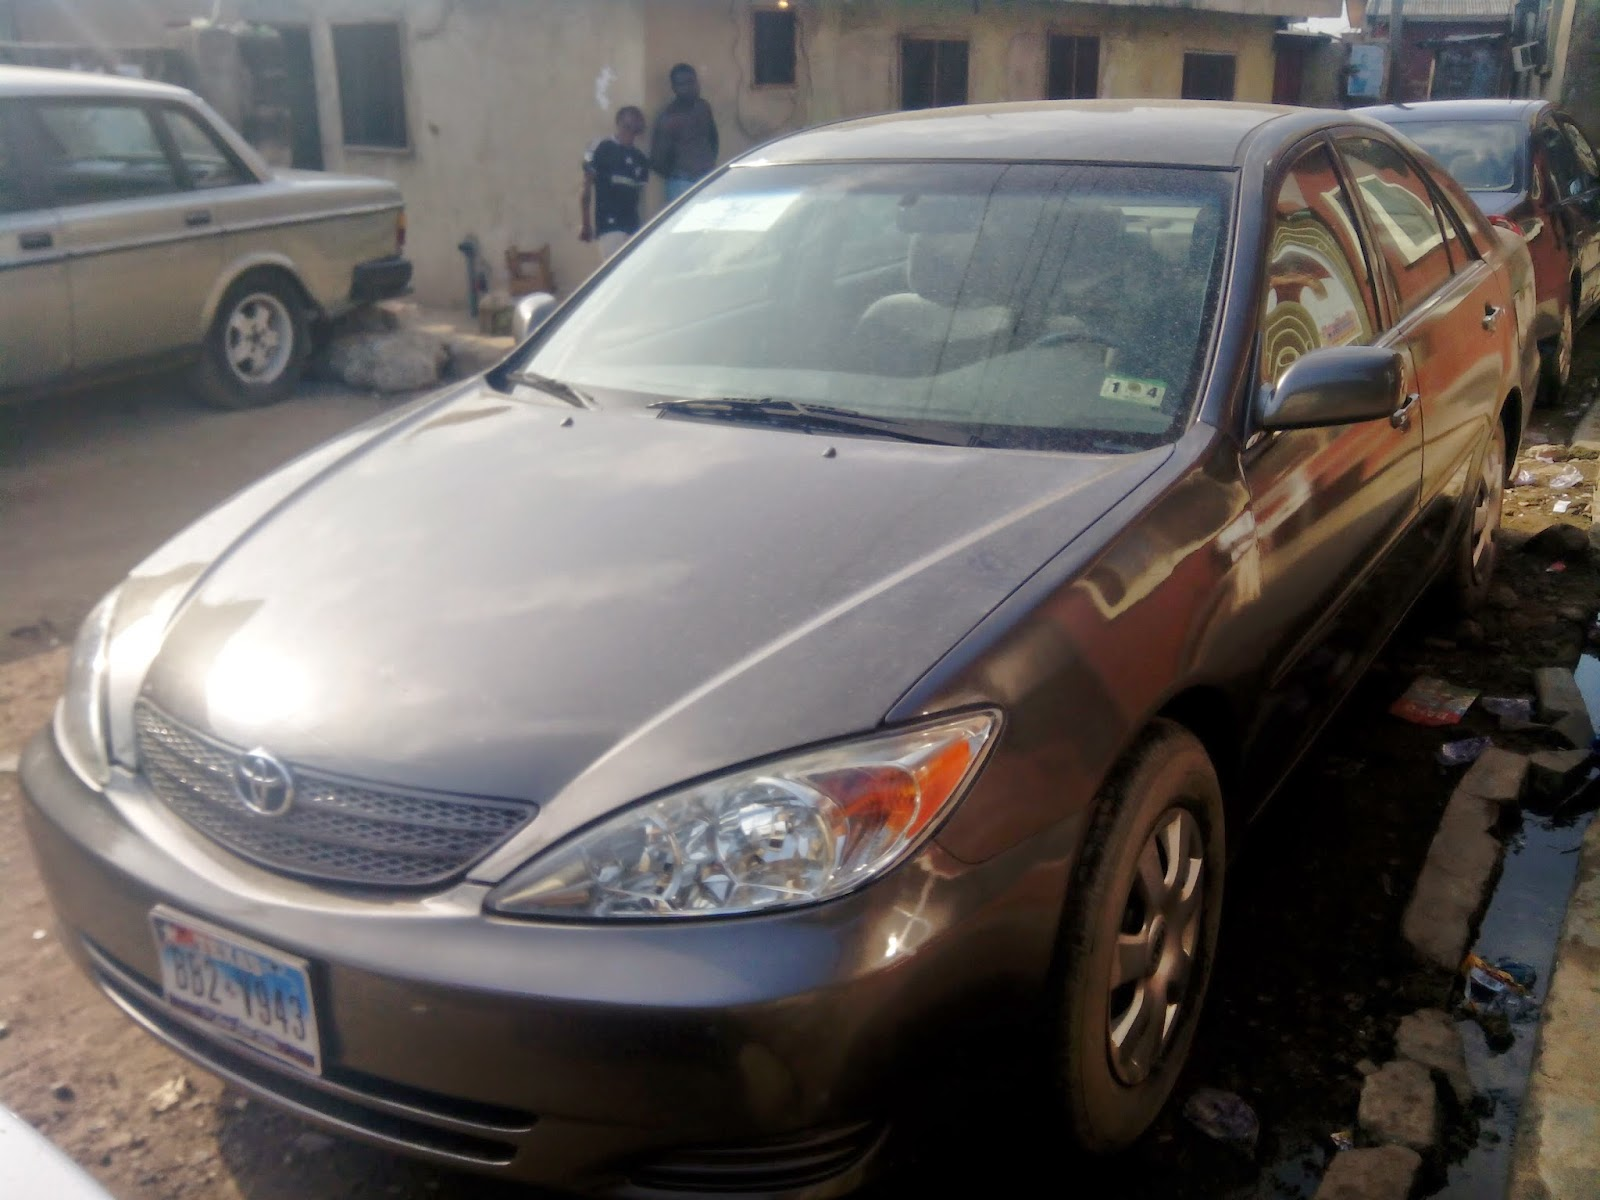 Extra neat 2004 model toyota camry for sale at an affordable price in lagos nigeria tokunbo